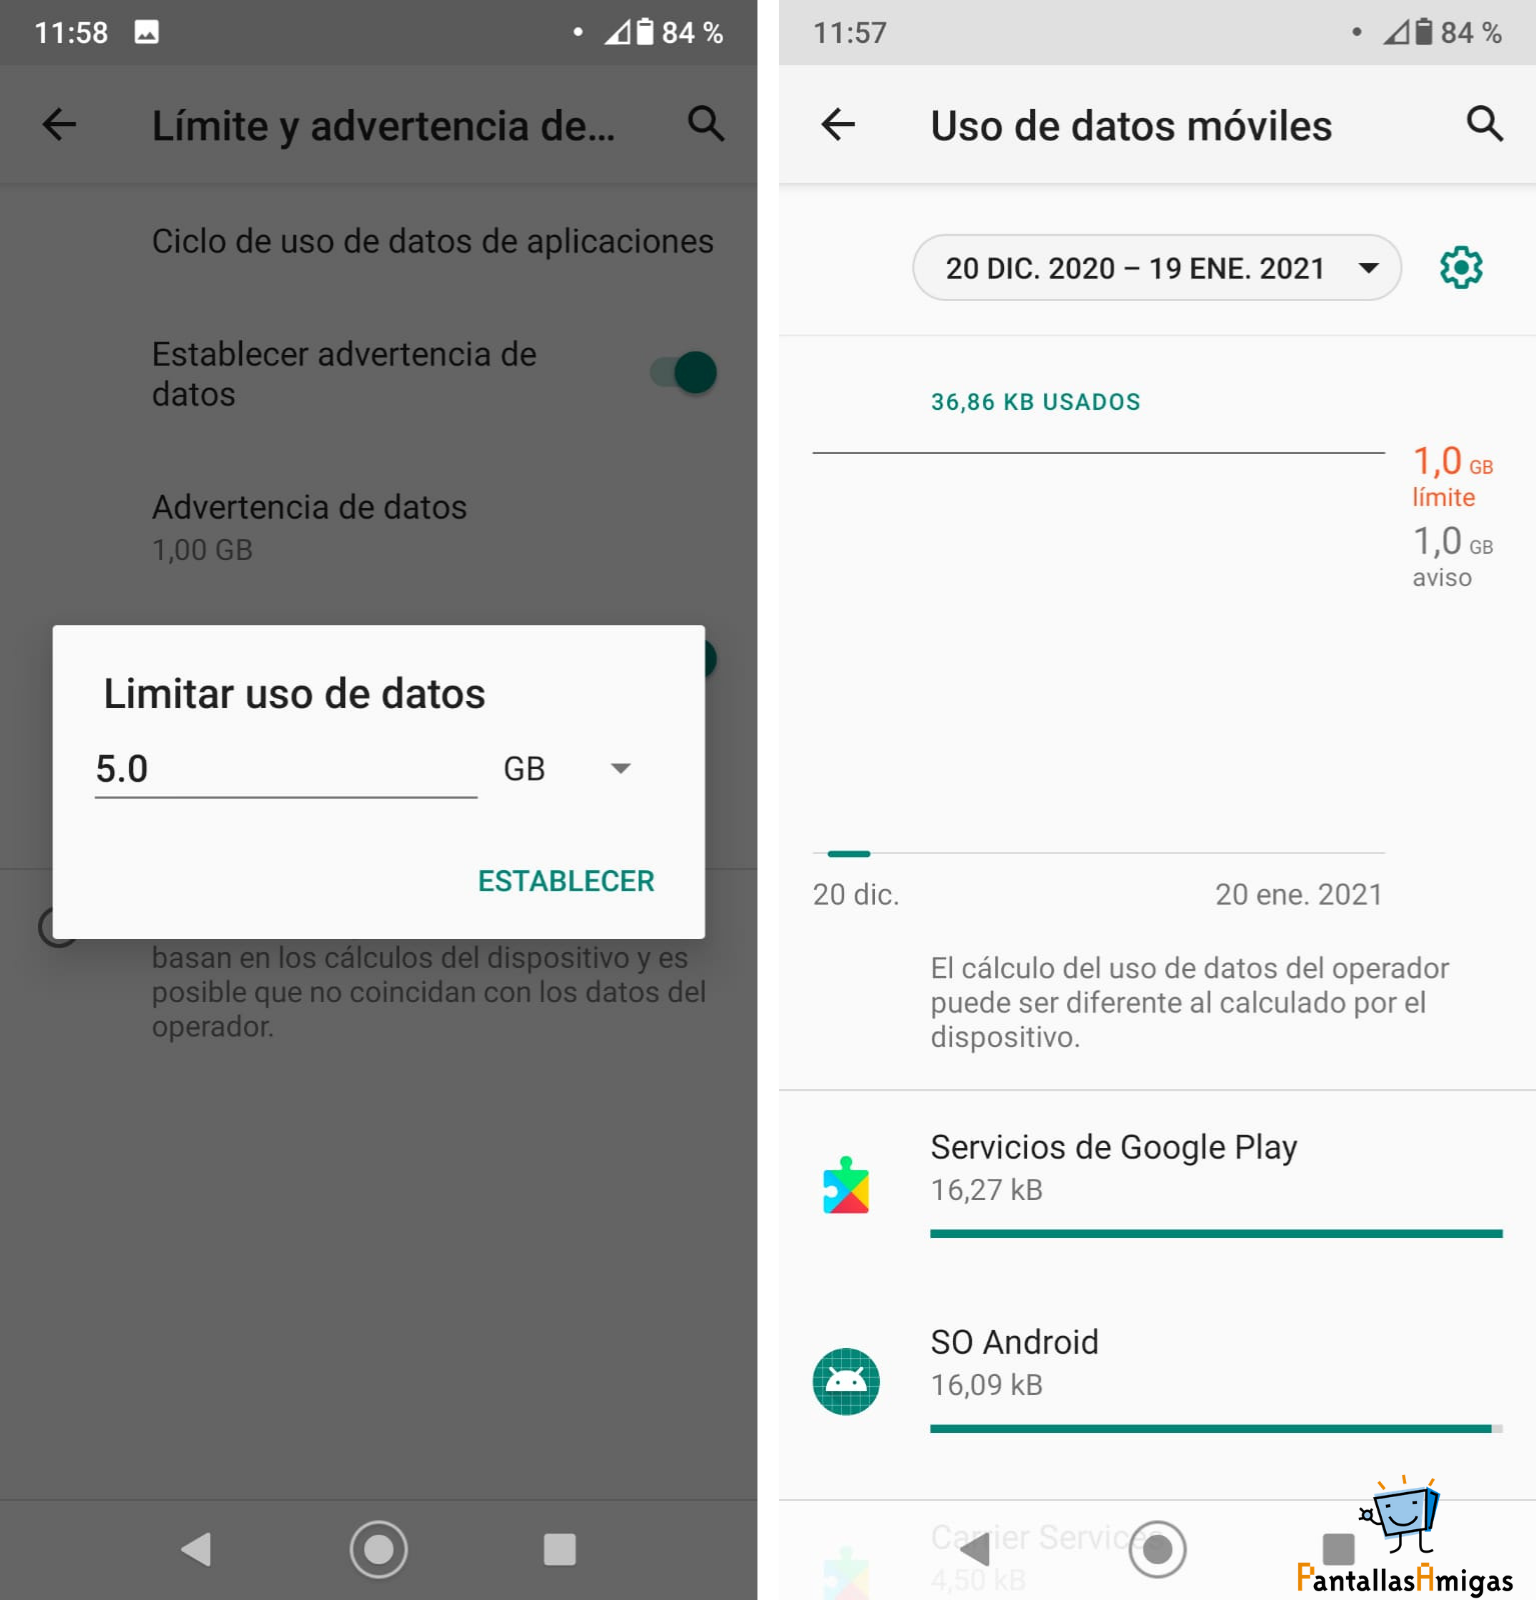 limitar-uso-datos-moviles-android